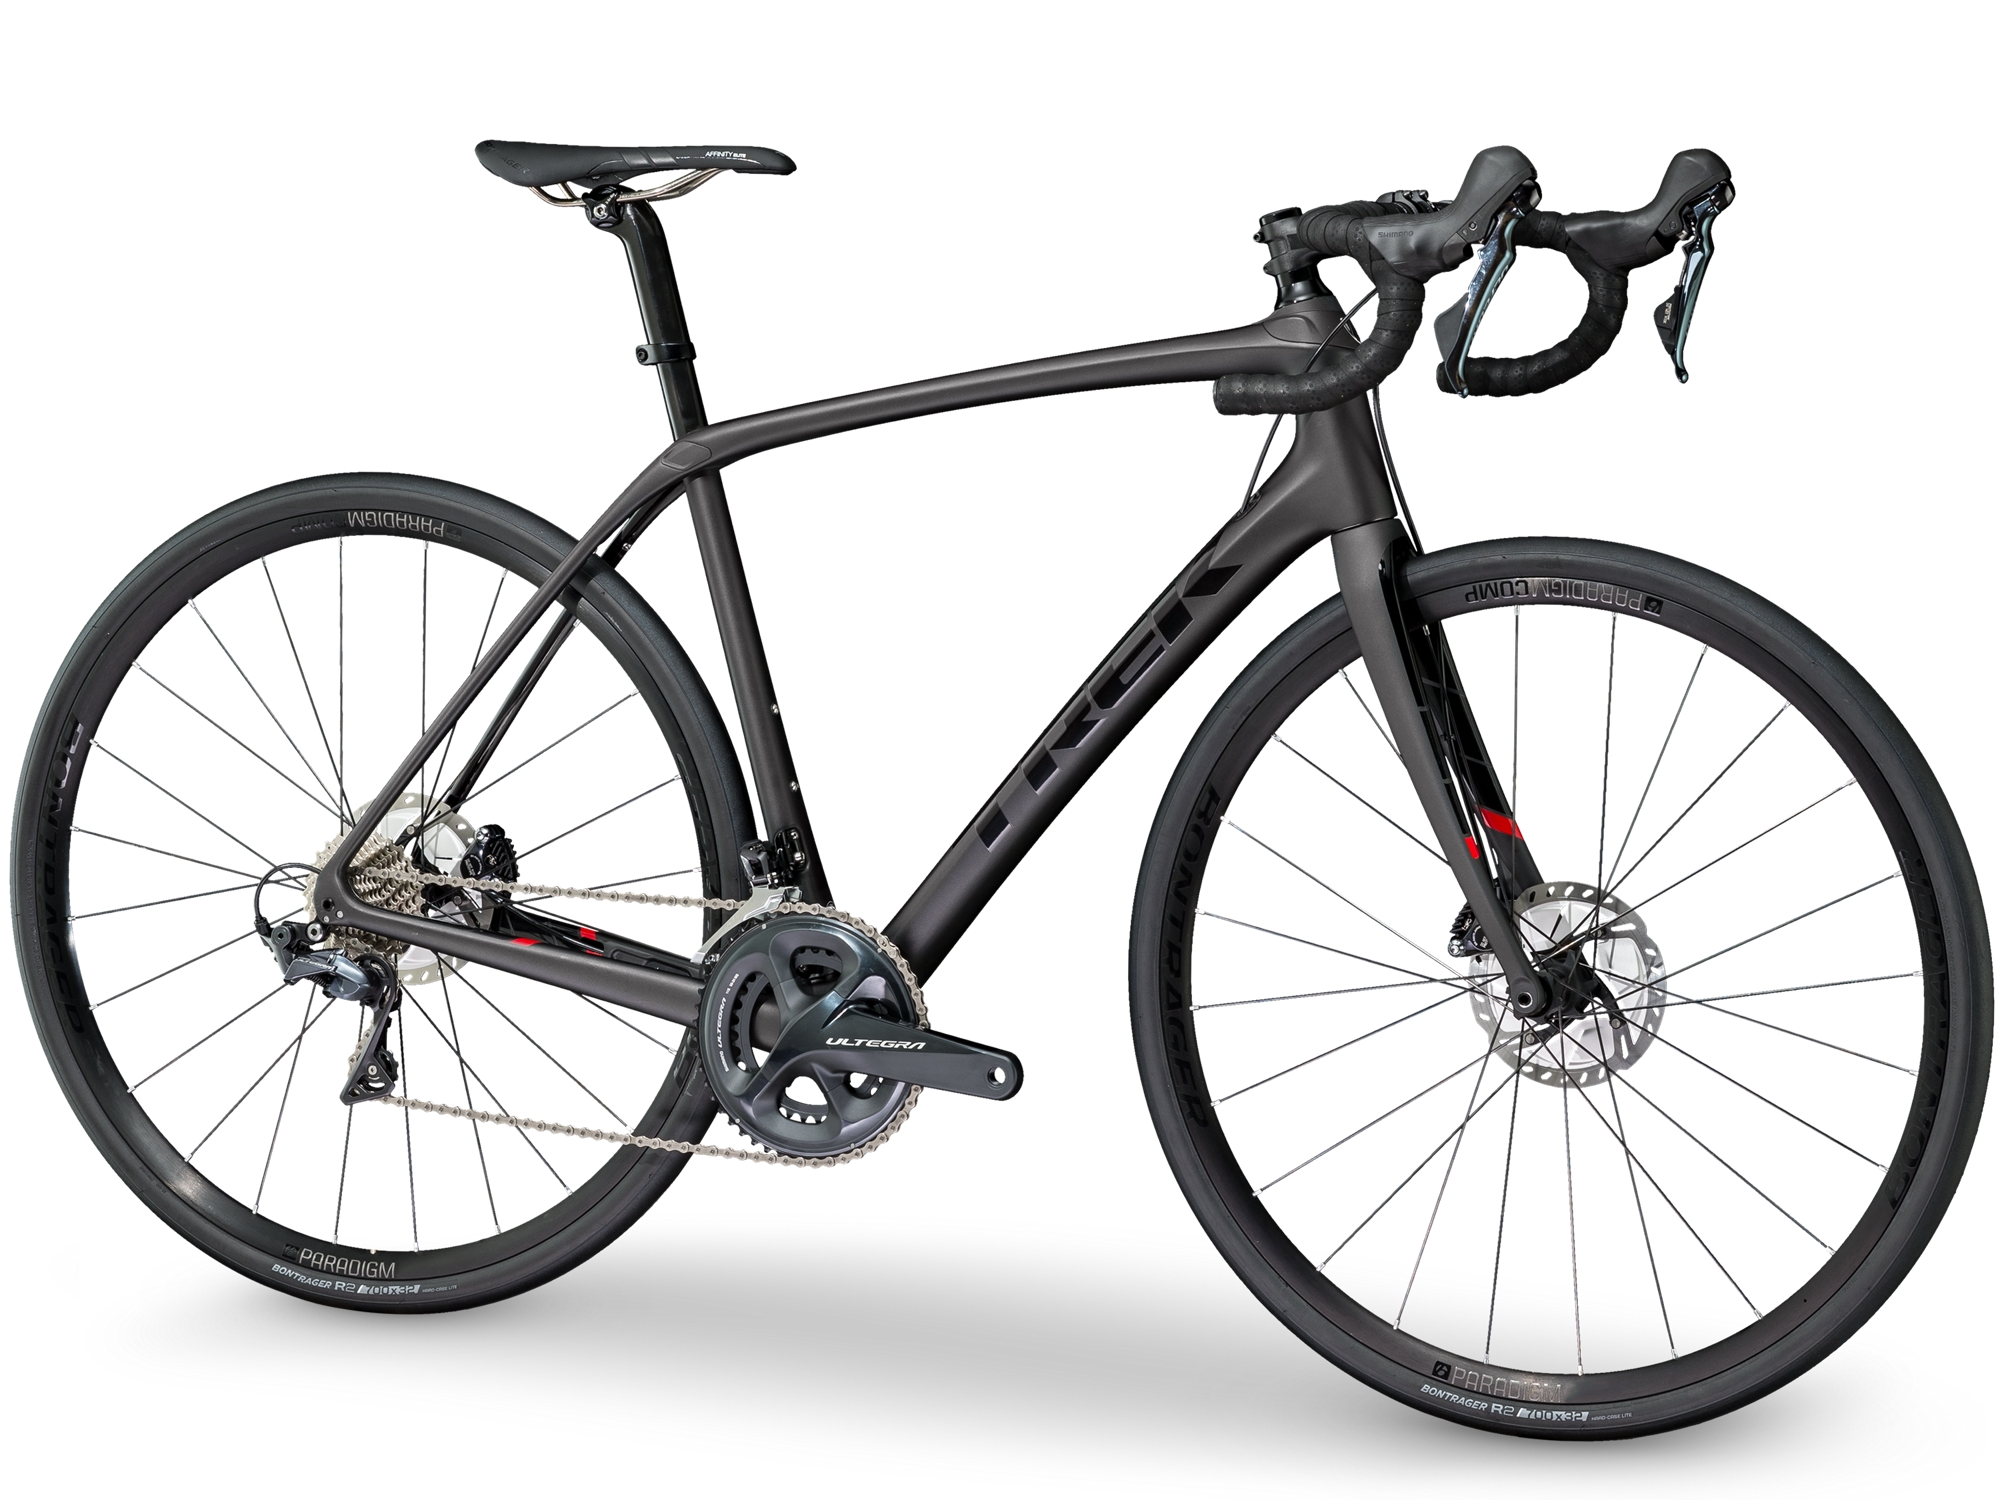 https://trek.scene7.com/is/image/TrekBicycleProducts/1462000_2018_A_2_Domane_SL_6_Disc?wid=2000